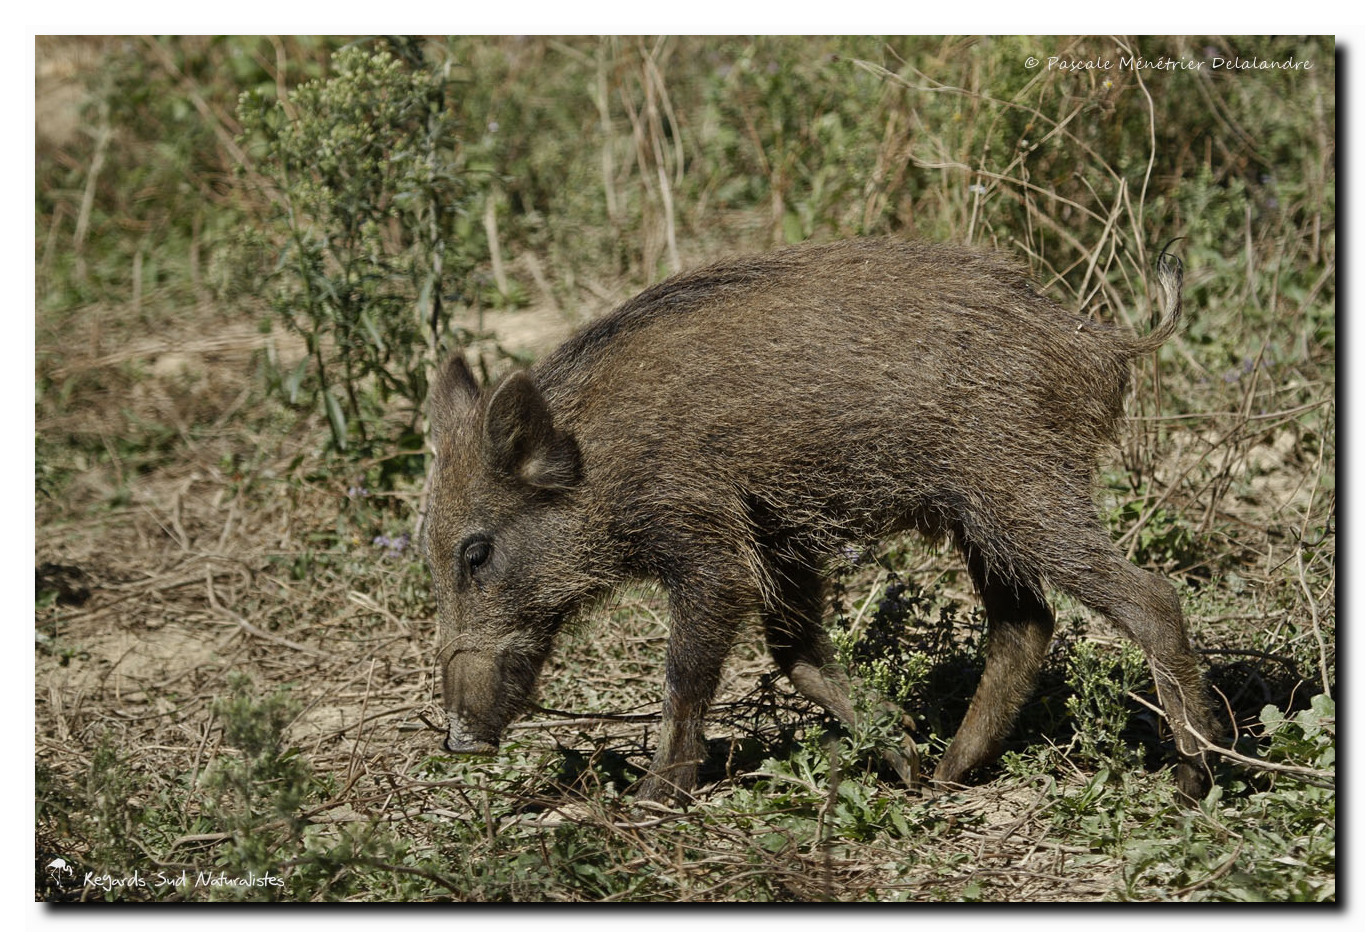 Sangliers ou cochons sauvages - Sus scrofa